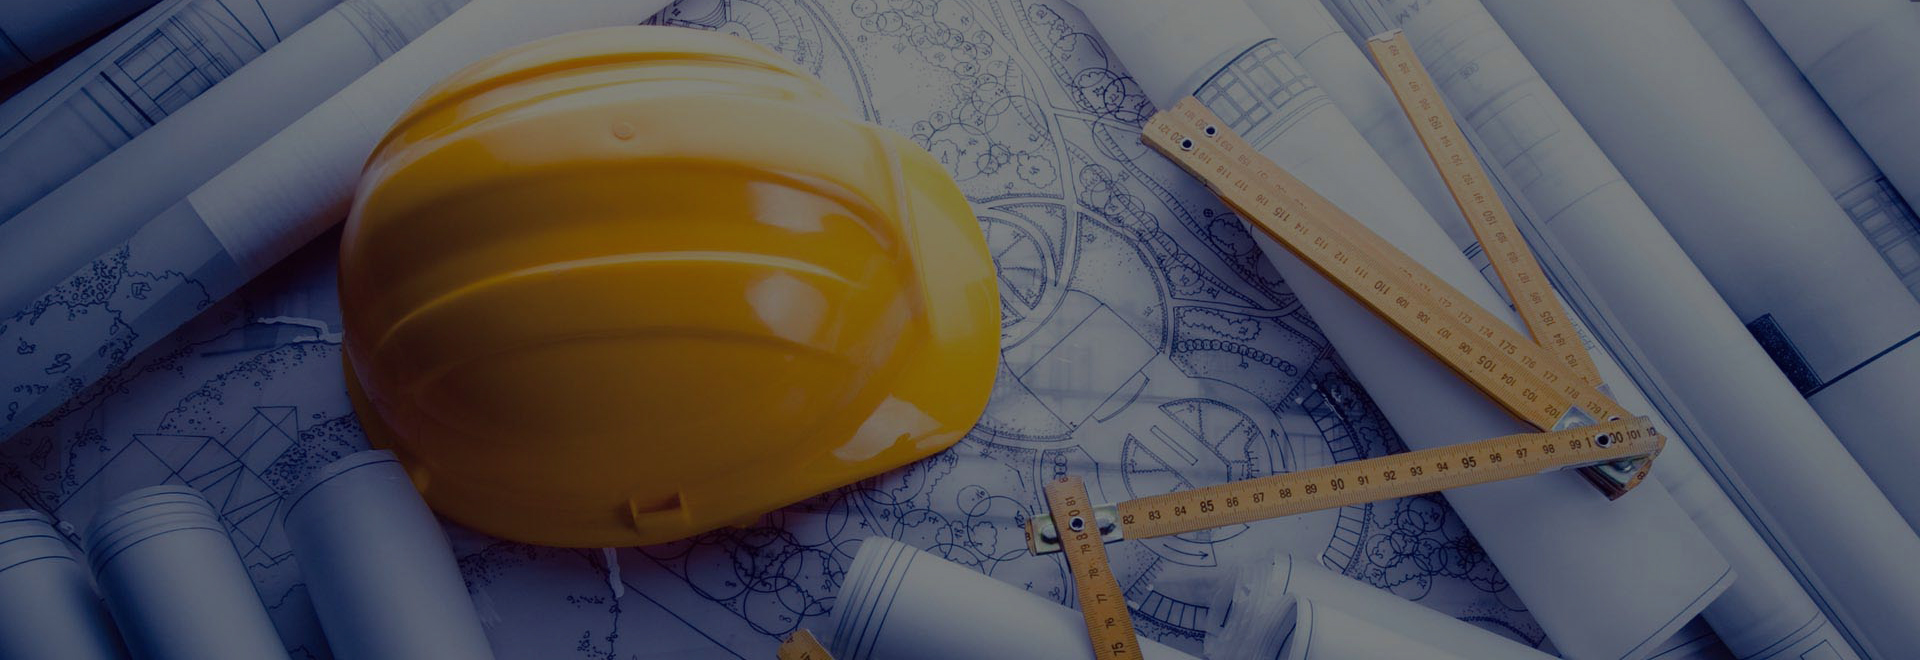 Architect & Engineering Services